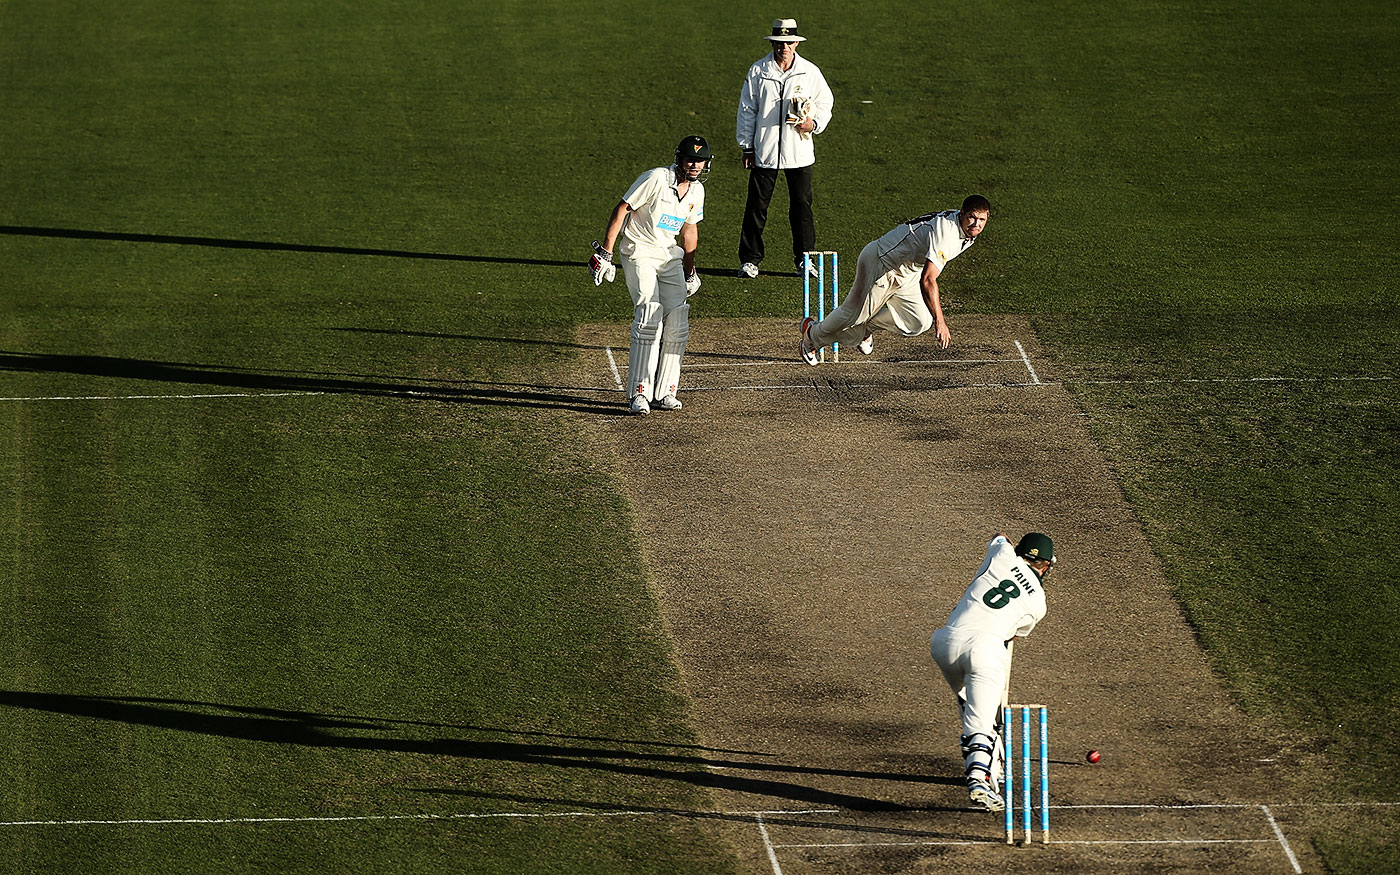 Made in Tassie: Paine in a Shield game against Queensland in 2013. Tasmania moved to snap Paine up early when he was undecided between football and cricket